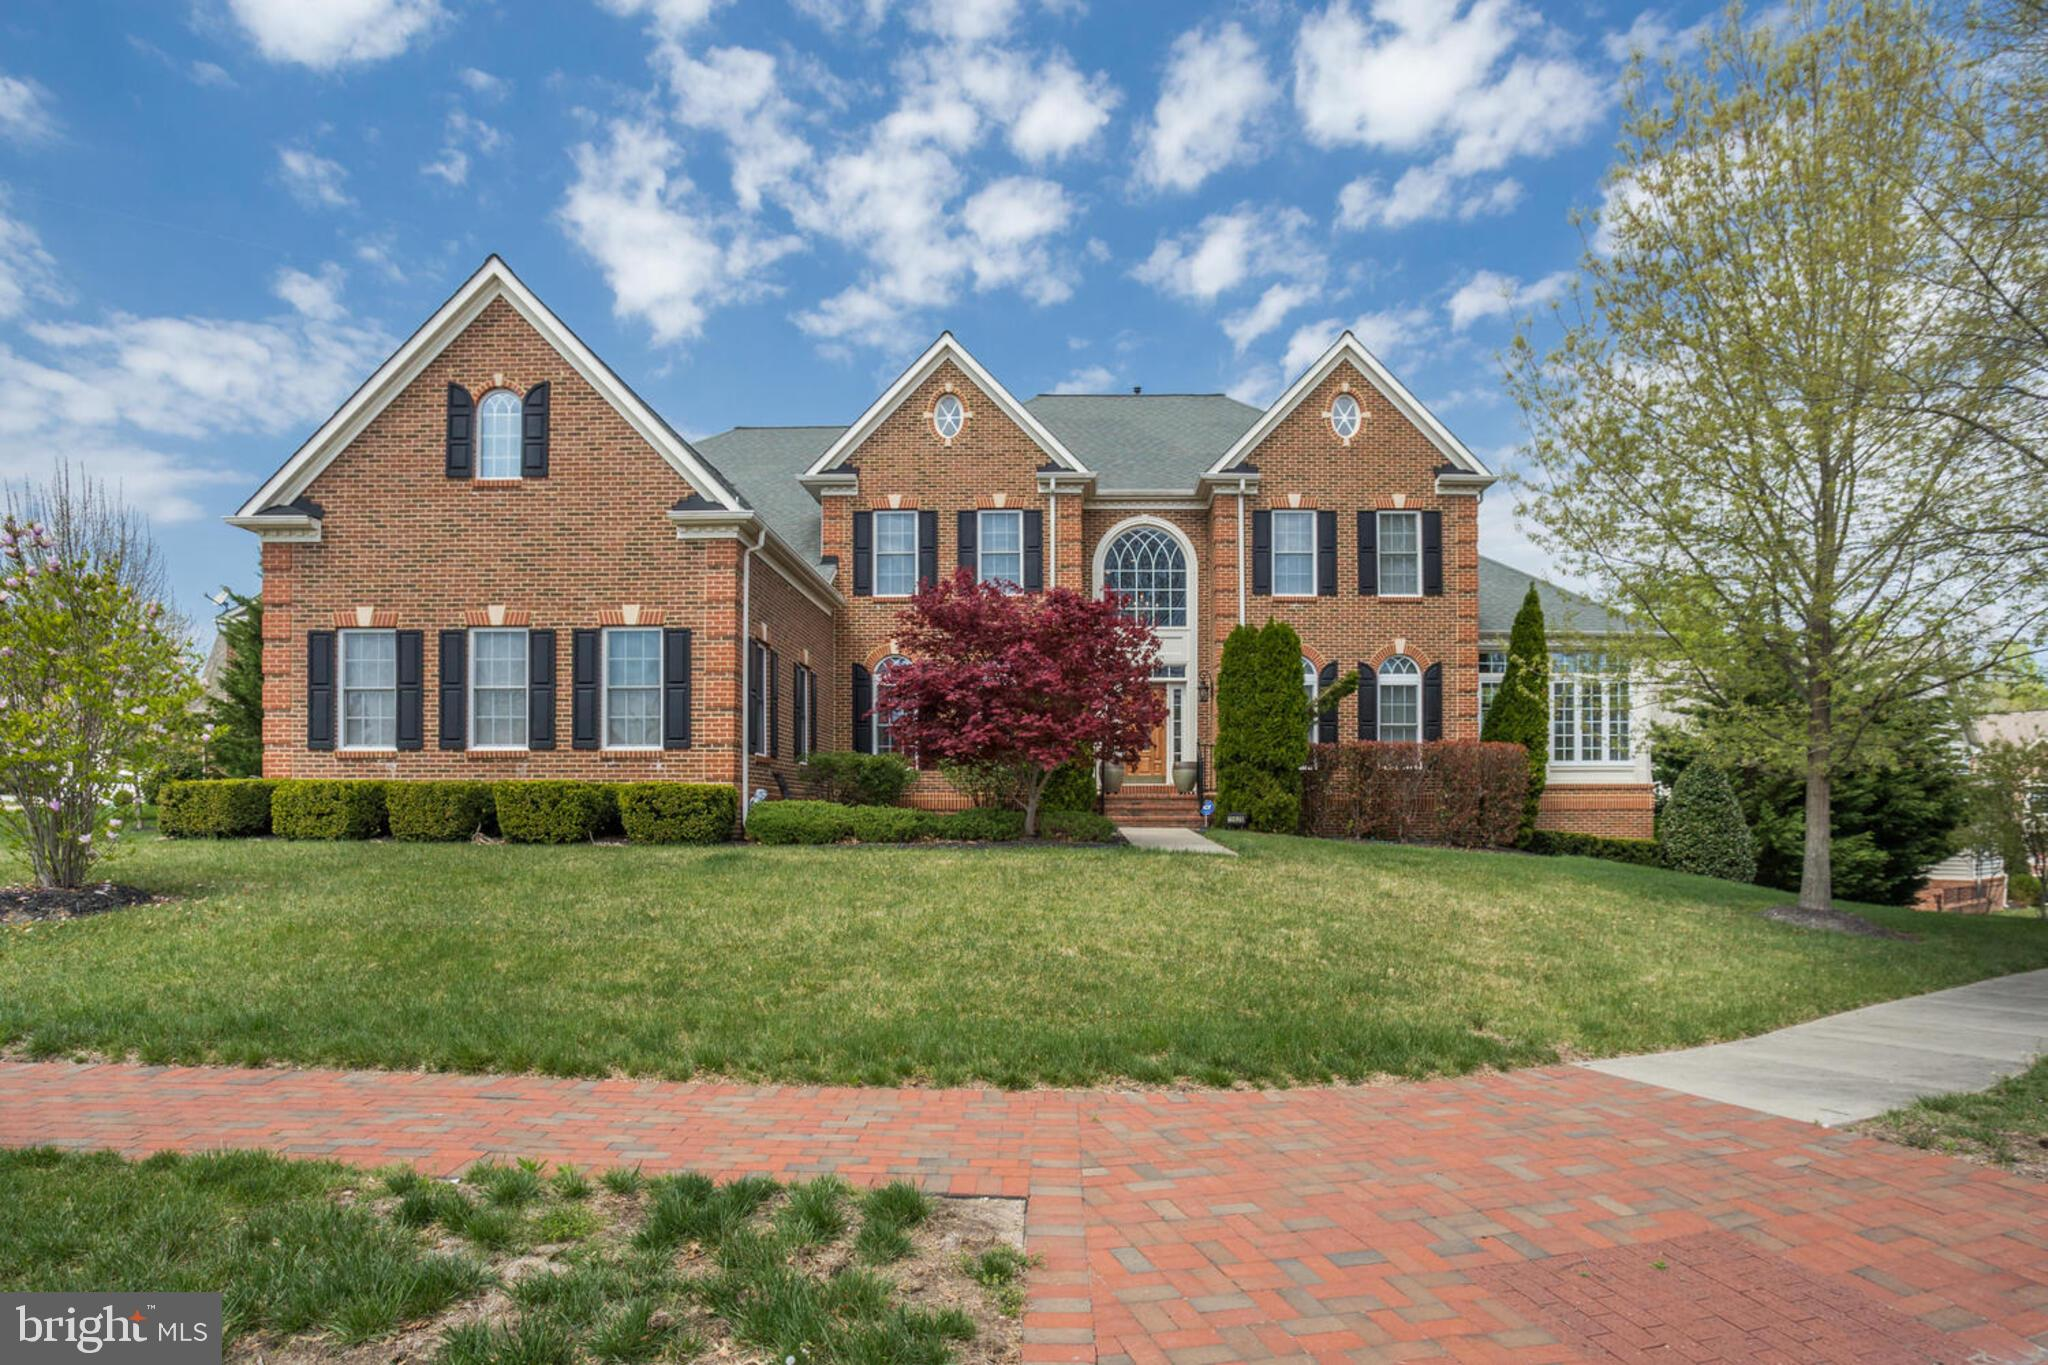 The glamourous Clifton Park model by NV Homes.  This large, stately Colonial sits on a desirable corner lot in the amenity loaded BeechTree community.  Floorplan designed with convenience in mind.  Grand two story foyer accented be a beautiful dual staircase.  Formal dining room and living room separated by graceful columns.  Stunning, light flooded conservatory with tray ceiling.  Two story family room with with gas fireplace, granite hearth and built in bookshelves.  The gourmet kitchen is a chefs paradise with a huge island, double wall oven and pantry.  Morning room with French door exit to deck.   Study, powder room and laundry also on main level.  Four bedrooms and four baths on upper level.  Luxury owner suite with sitting room, ceiling fan, 30 ft. walk in closet, and attached spa bath featuring gorgeous tile work, jetted tub, separate shower, built in wine chiller and dual vanity.  Fully finished basement complete with home theater, rec room with gas fireplace, workout room, full entertainment kitchen, one bedroom, one full bathroom and private exit.  Three zone HVAC.  Lawn irrigation system.  Truly a grand residence.  Resort style community features a recreation center, swimming pool, tennis courts, fitness center and more.   Enjoy over three miles of walking trails.  Award winning 18 hole Championship Golf Course winds through the community.  A waterfront restaurant is located in the Lake Presidential Clubhouse.  Must see!